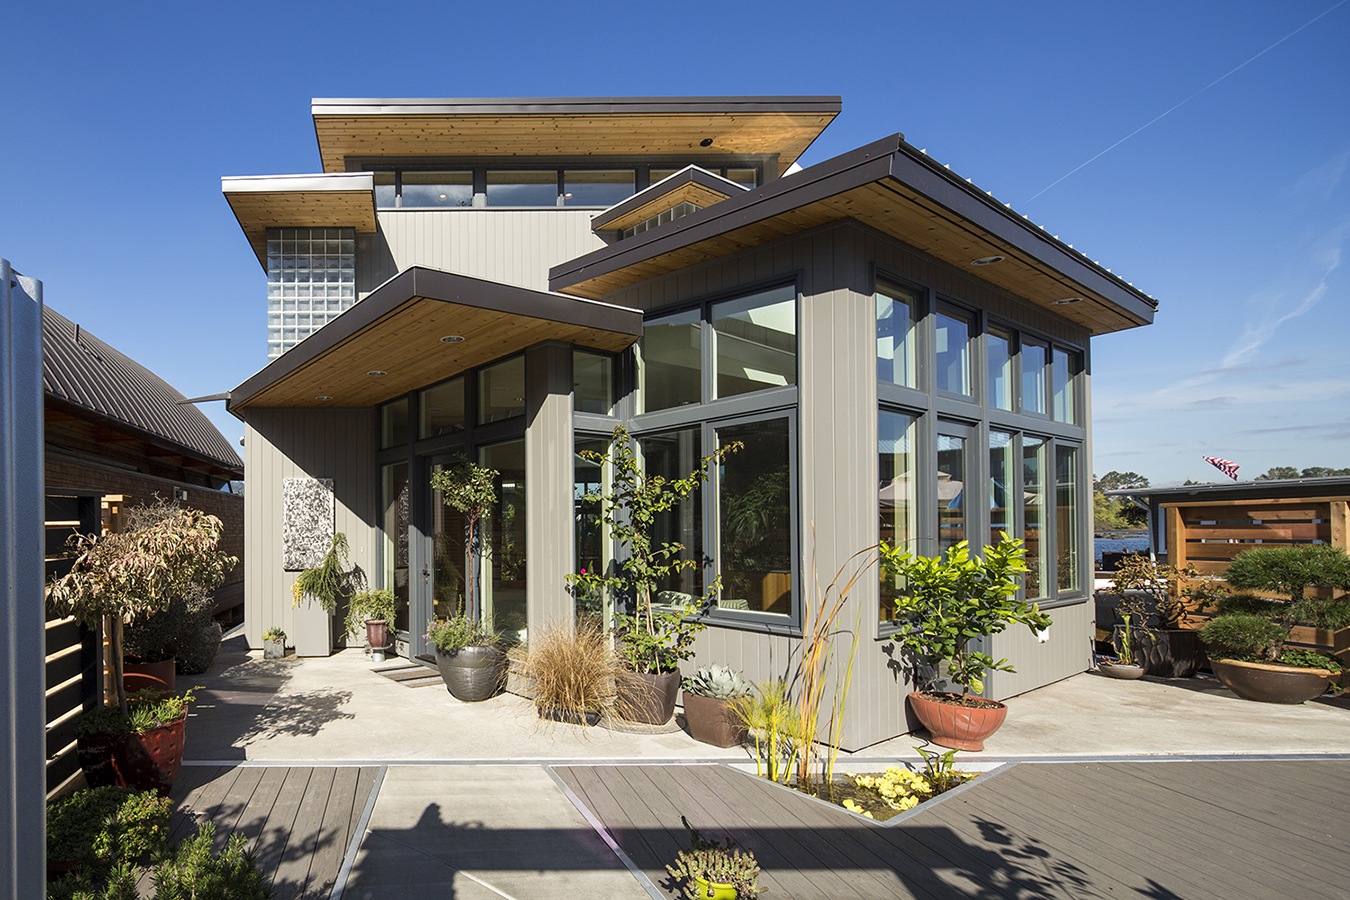 5th annual portland modern home tour features best in Modern house portland